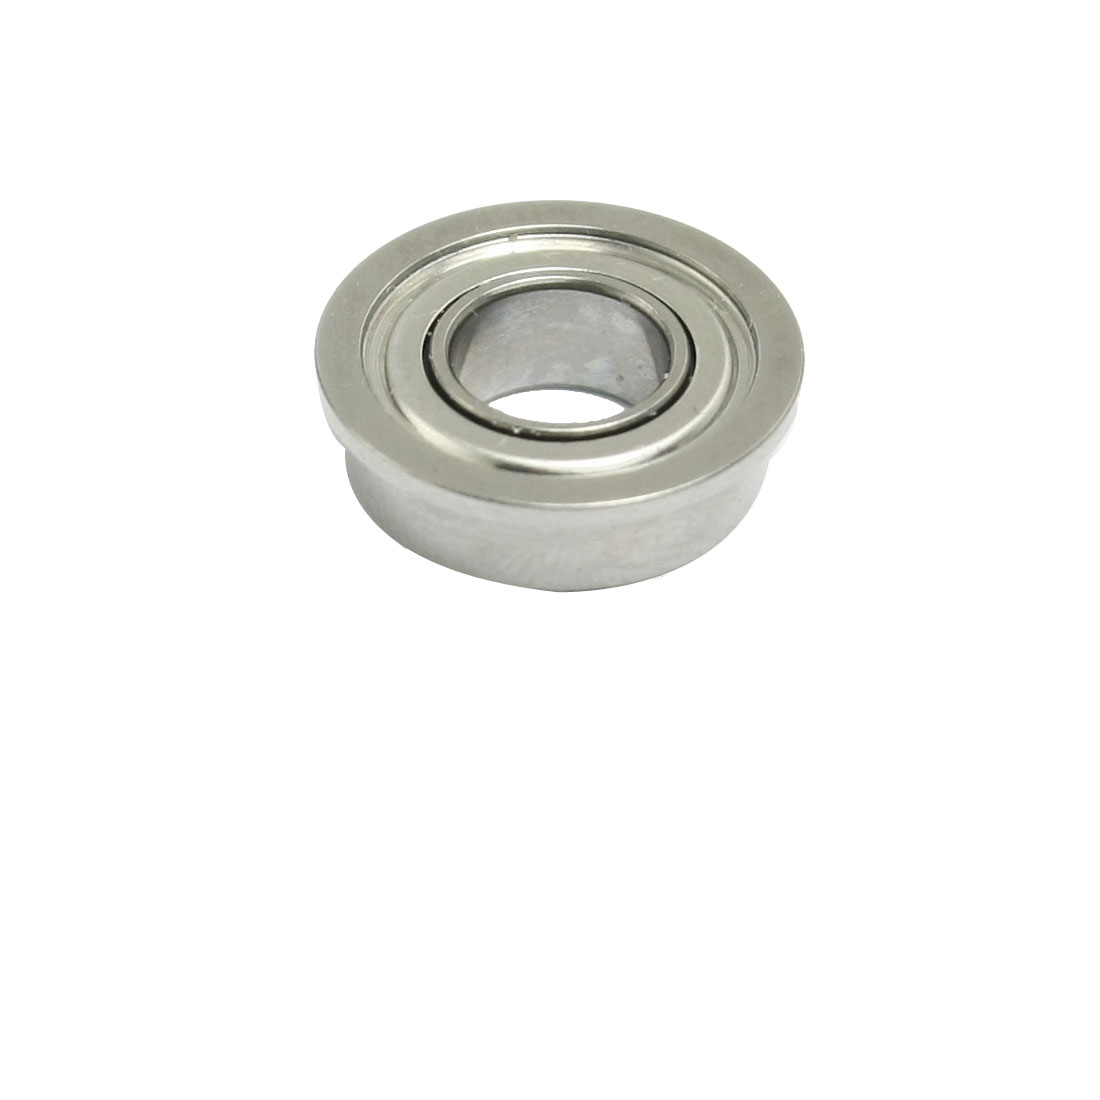 Unique Bargains Radial Shielded 13mm x 6mm x 6mm Deep Groove Flanged Ball Bearing